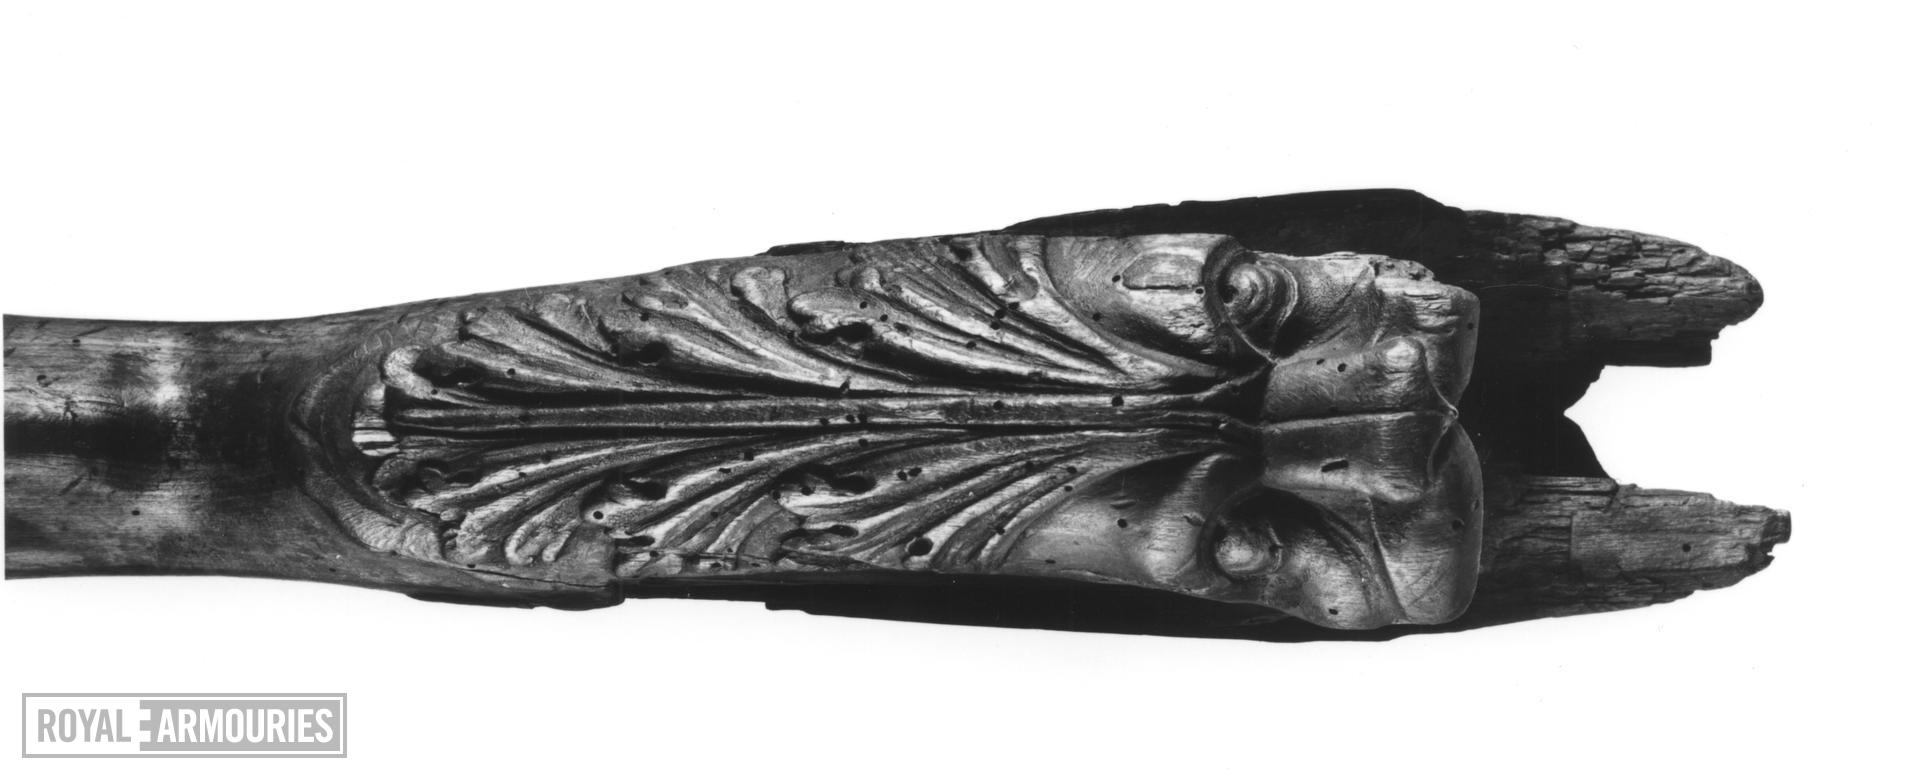 Flintlock firework gun - N/A The breech end of the stock is carved in high relief as a monster's head.